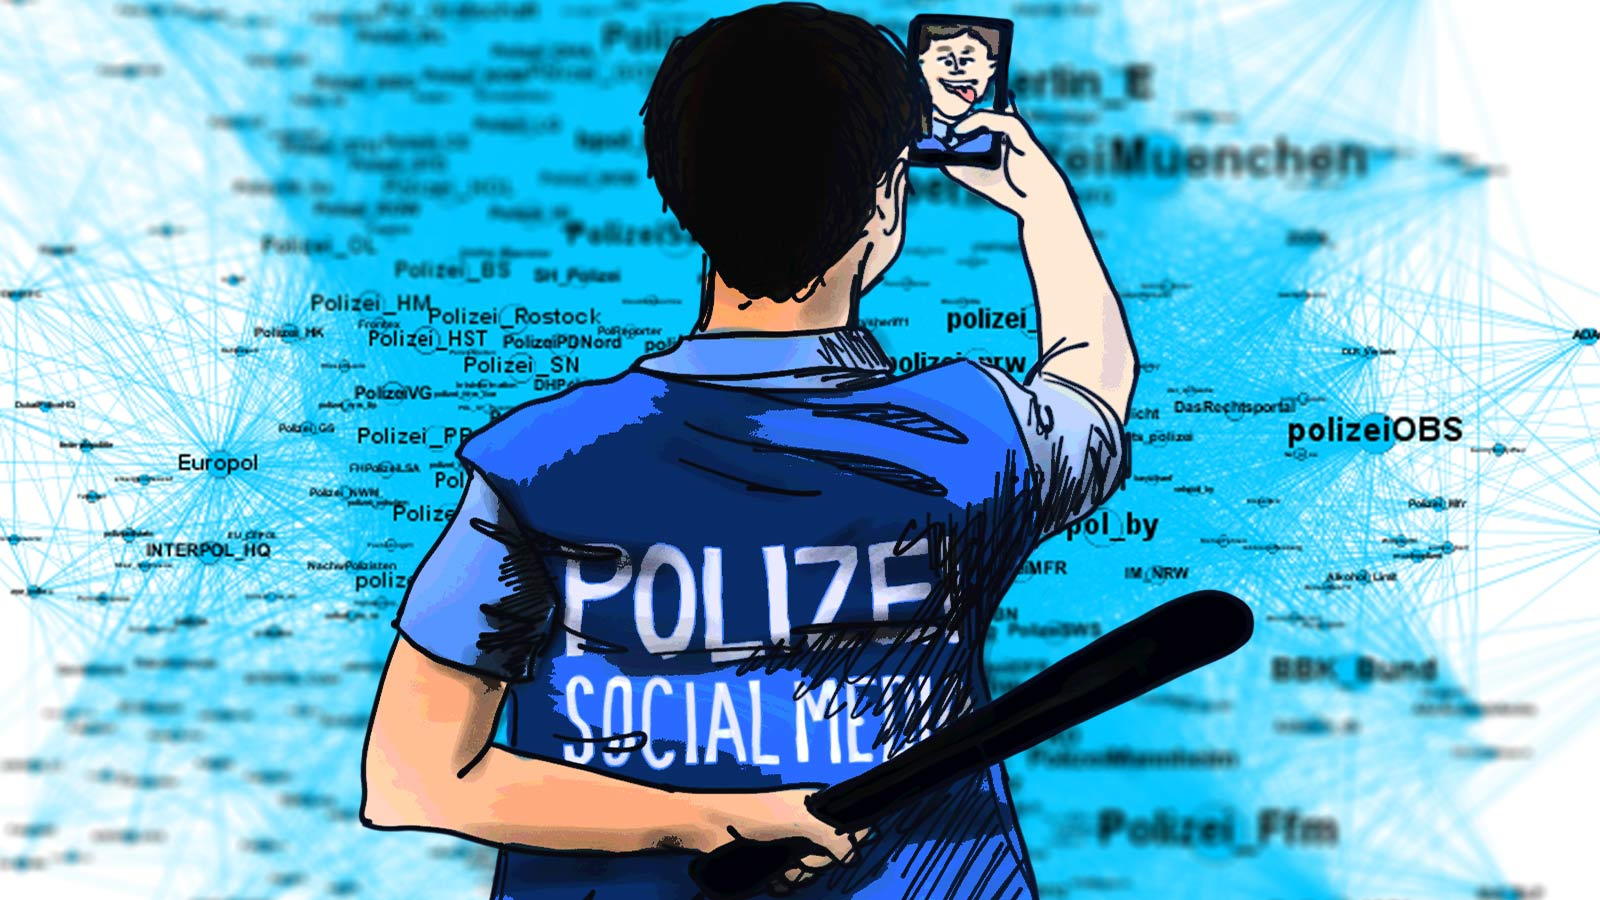 polizei_social_media_teams_polizeiaccounts_polizeibehoerden_polizeibeamte_polizeien_imagegewinn_imagepflege_influencer_kritisches_netzwerk_twitter_tweets_digitale_polizeiarbeit.jpg